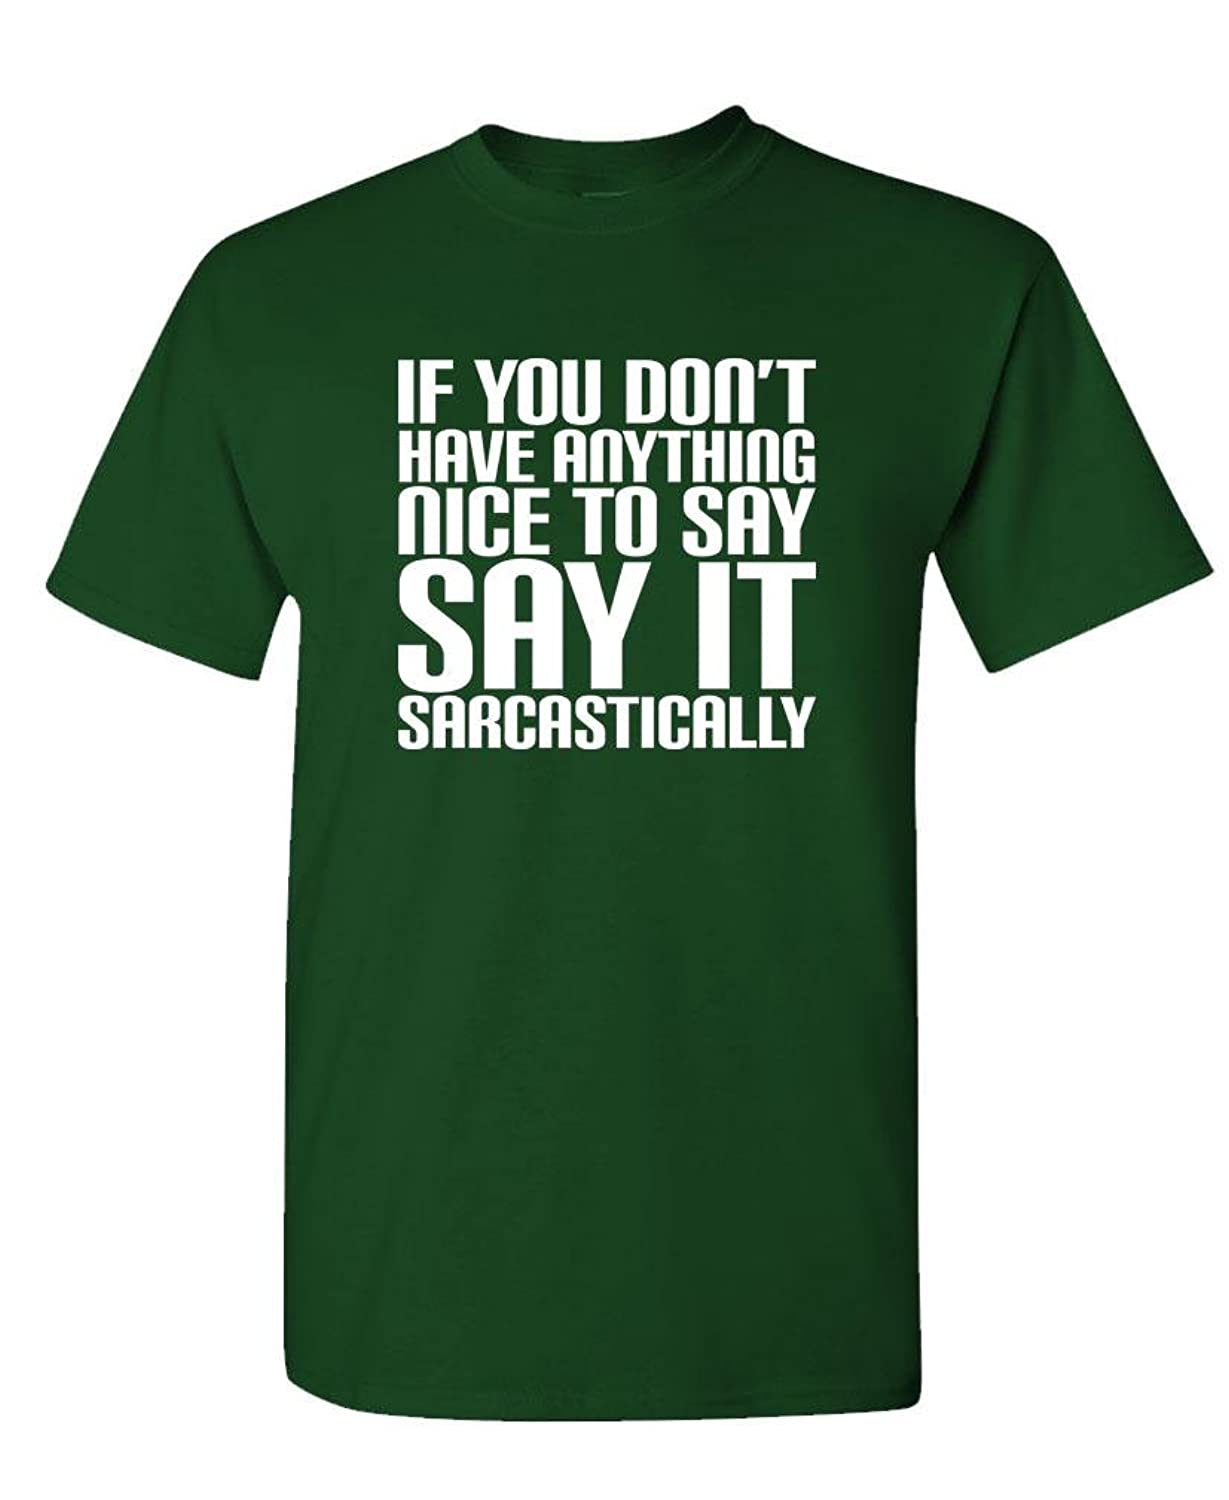 IF YOU DON'T HAVE ANYTHING NICE TO SAY... - Mens Cotton T-Shirt